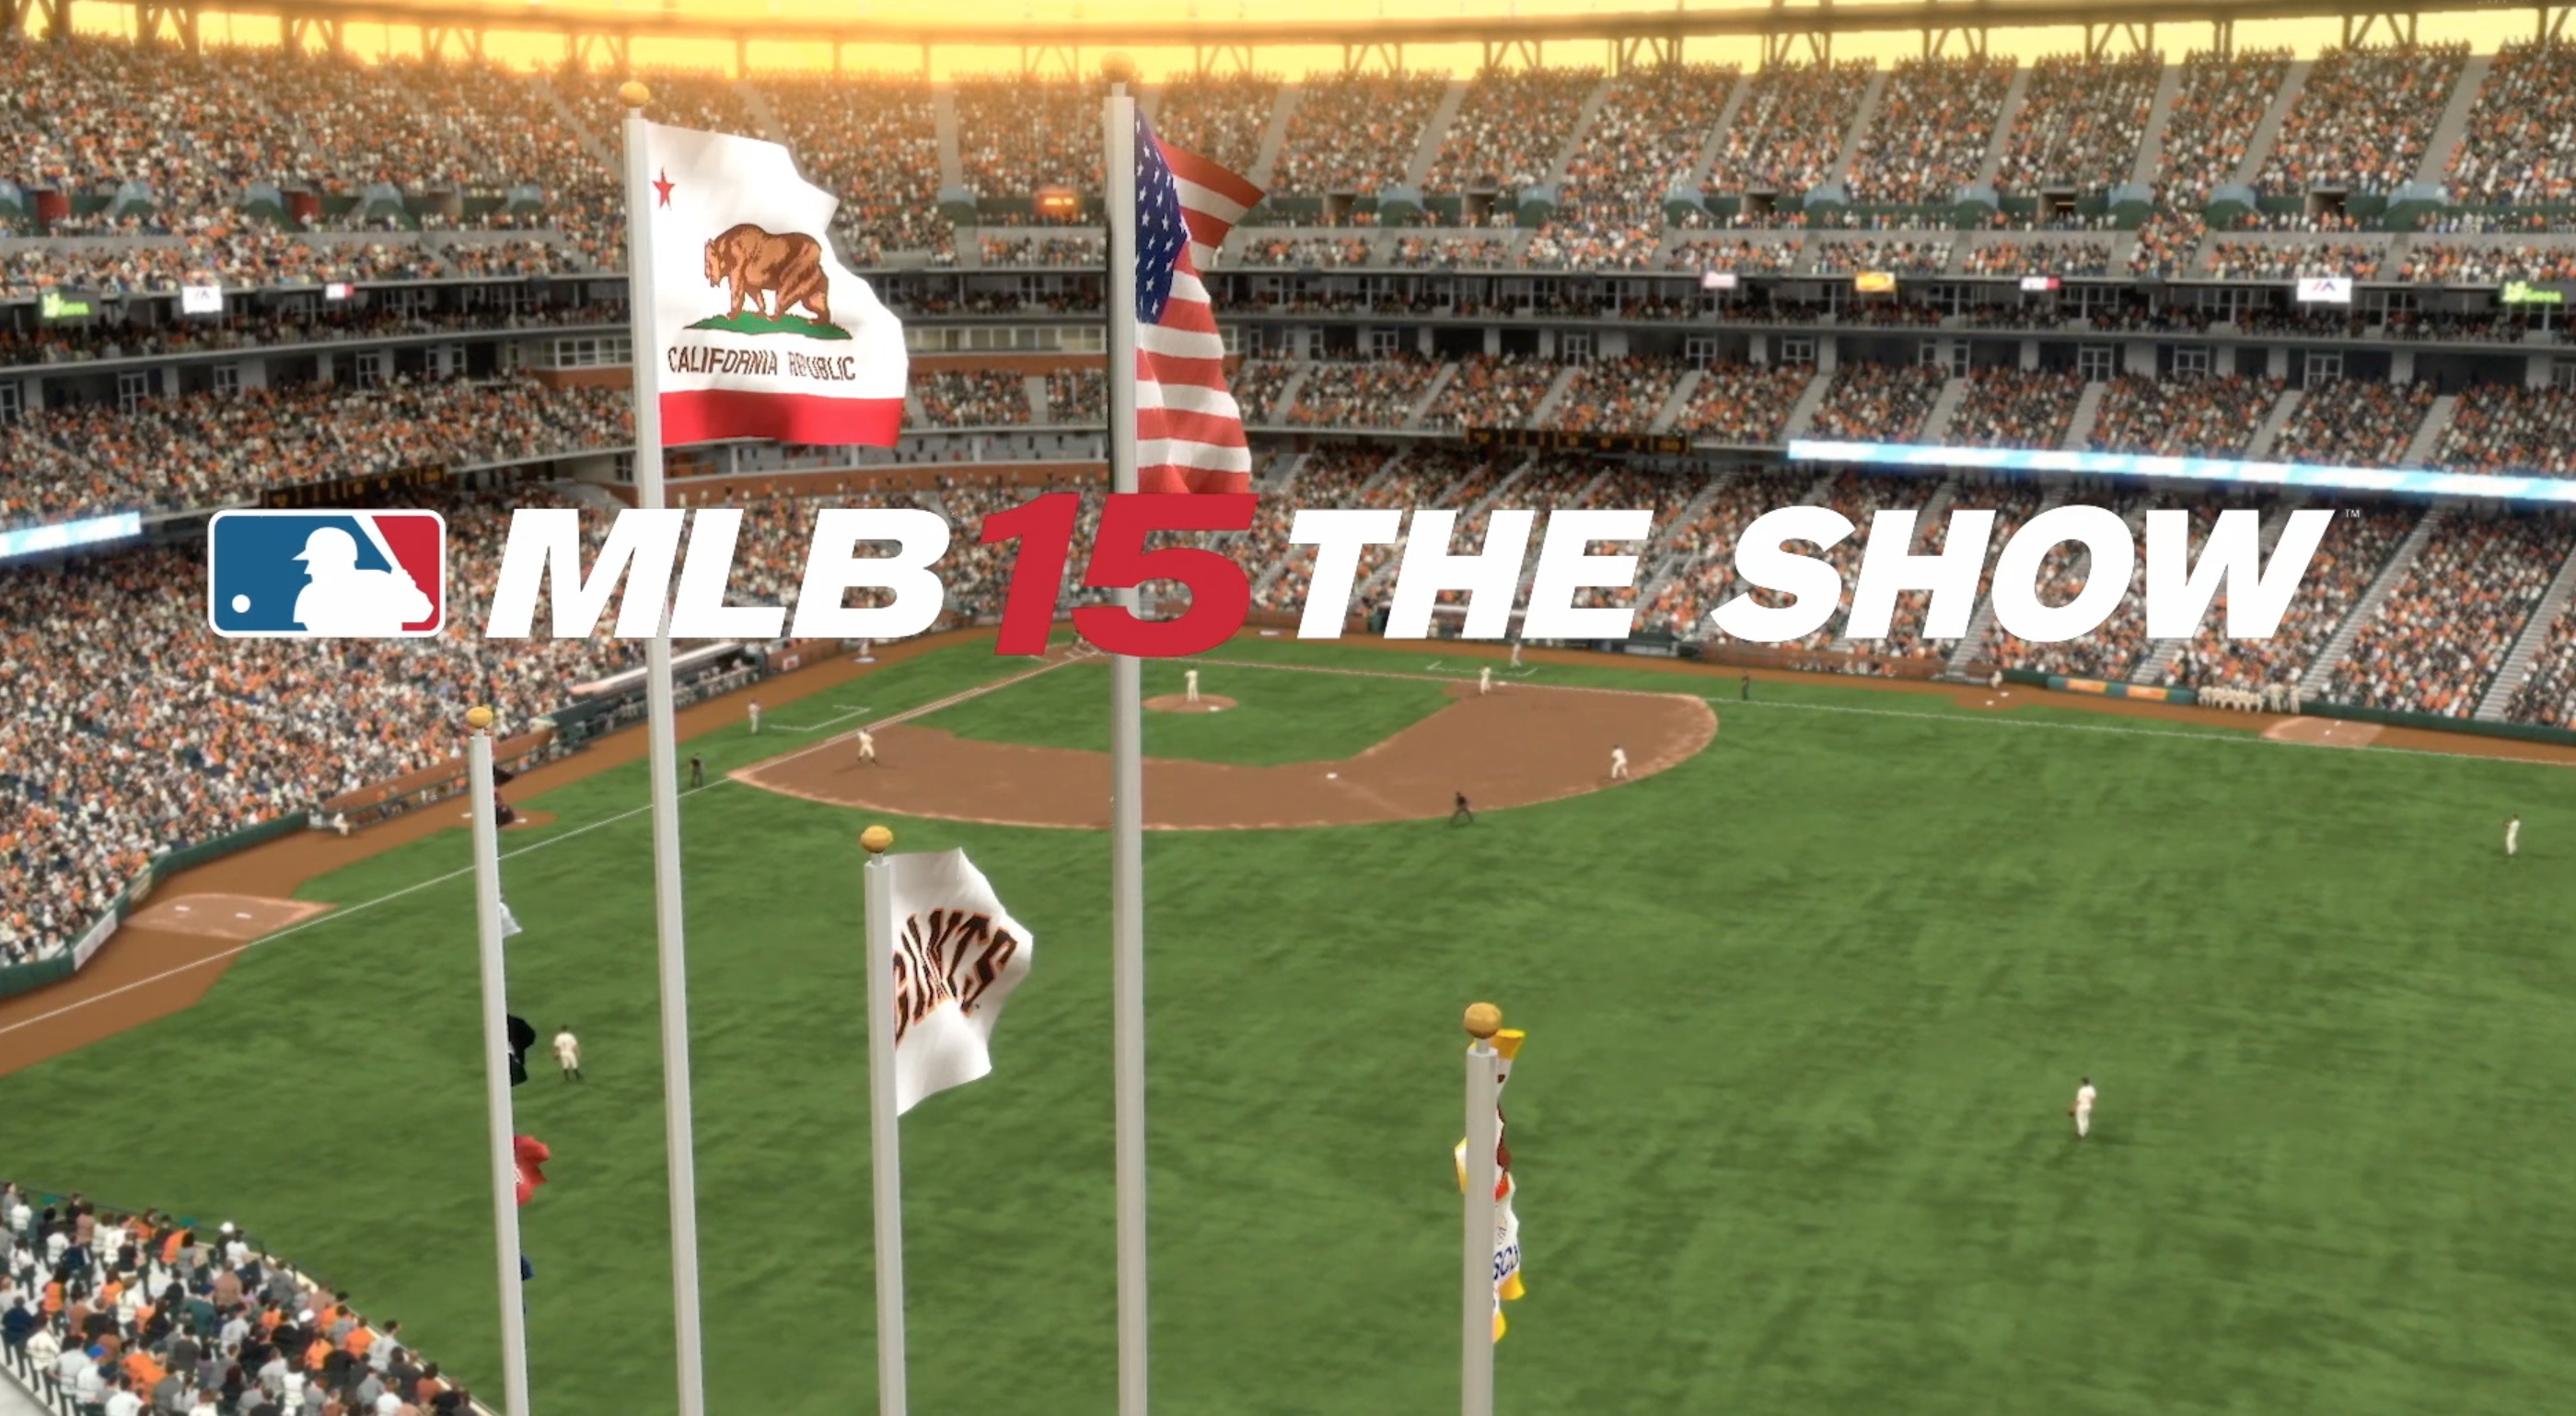 Playstation: MLB 15 The Show